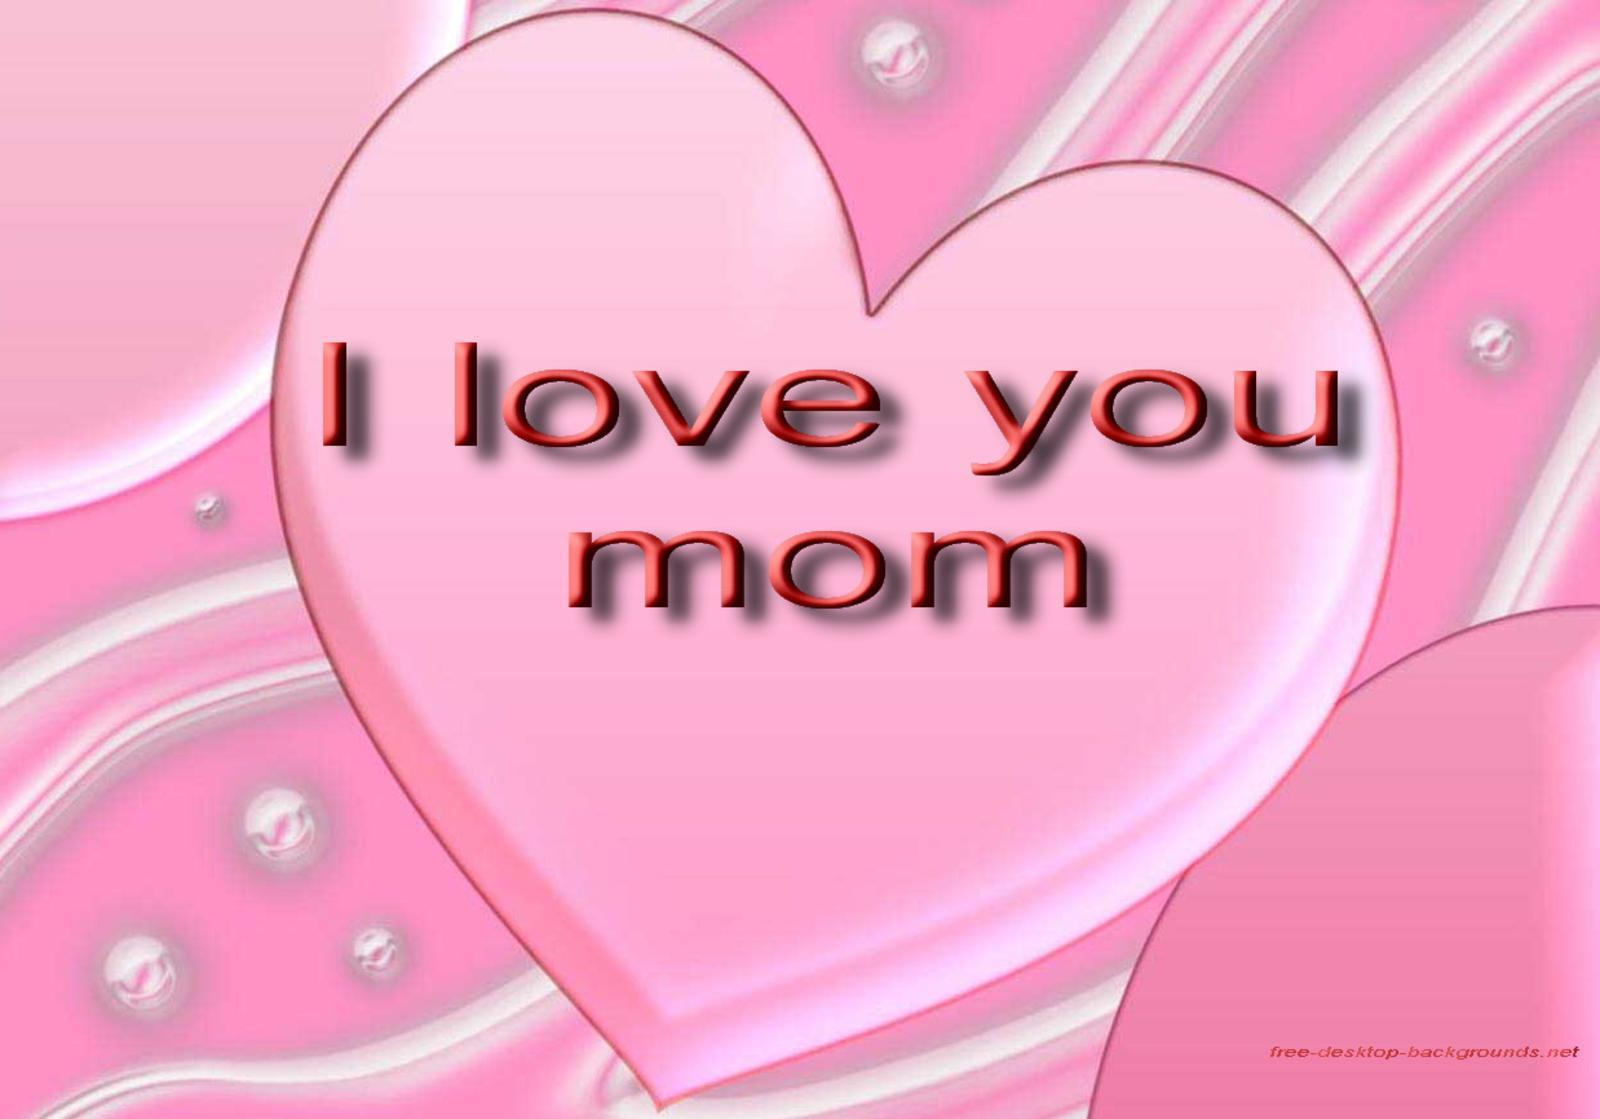 Mom Love Baby Wallpaper : I Love You Mom Wallpapers - Wallpaper cave